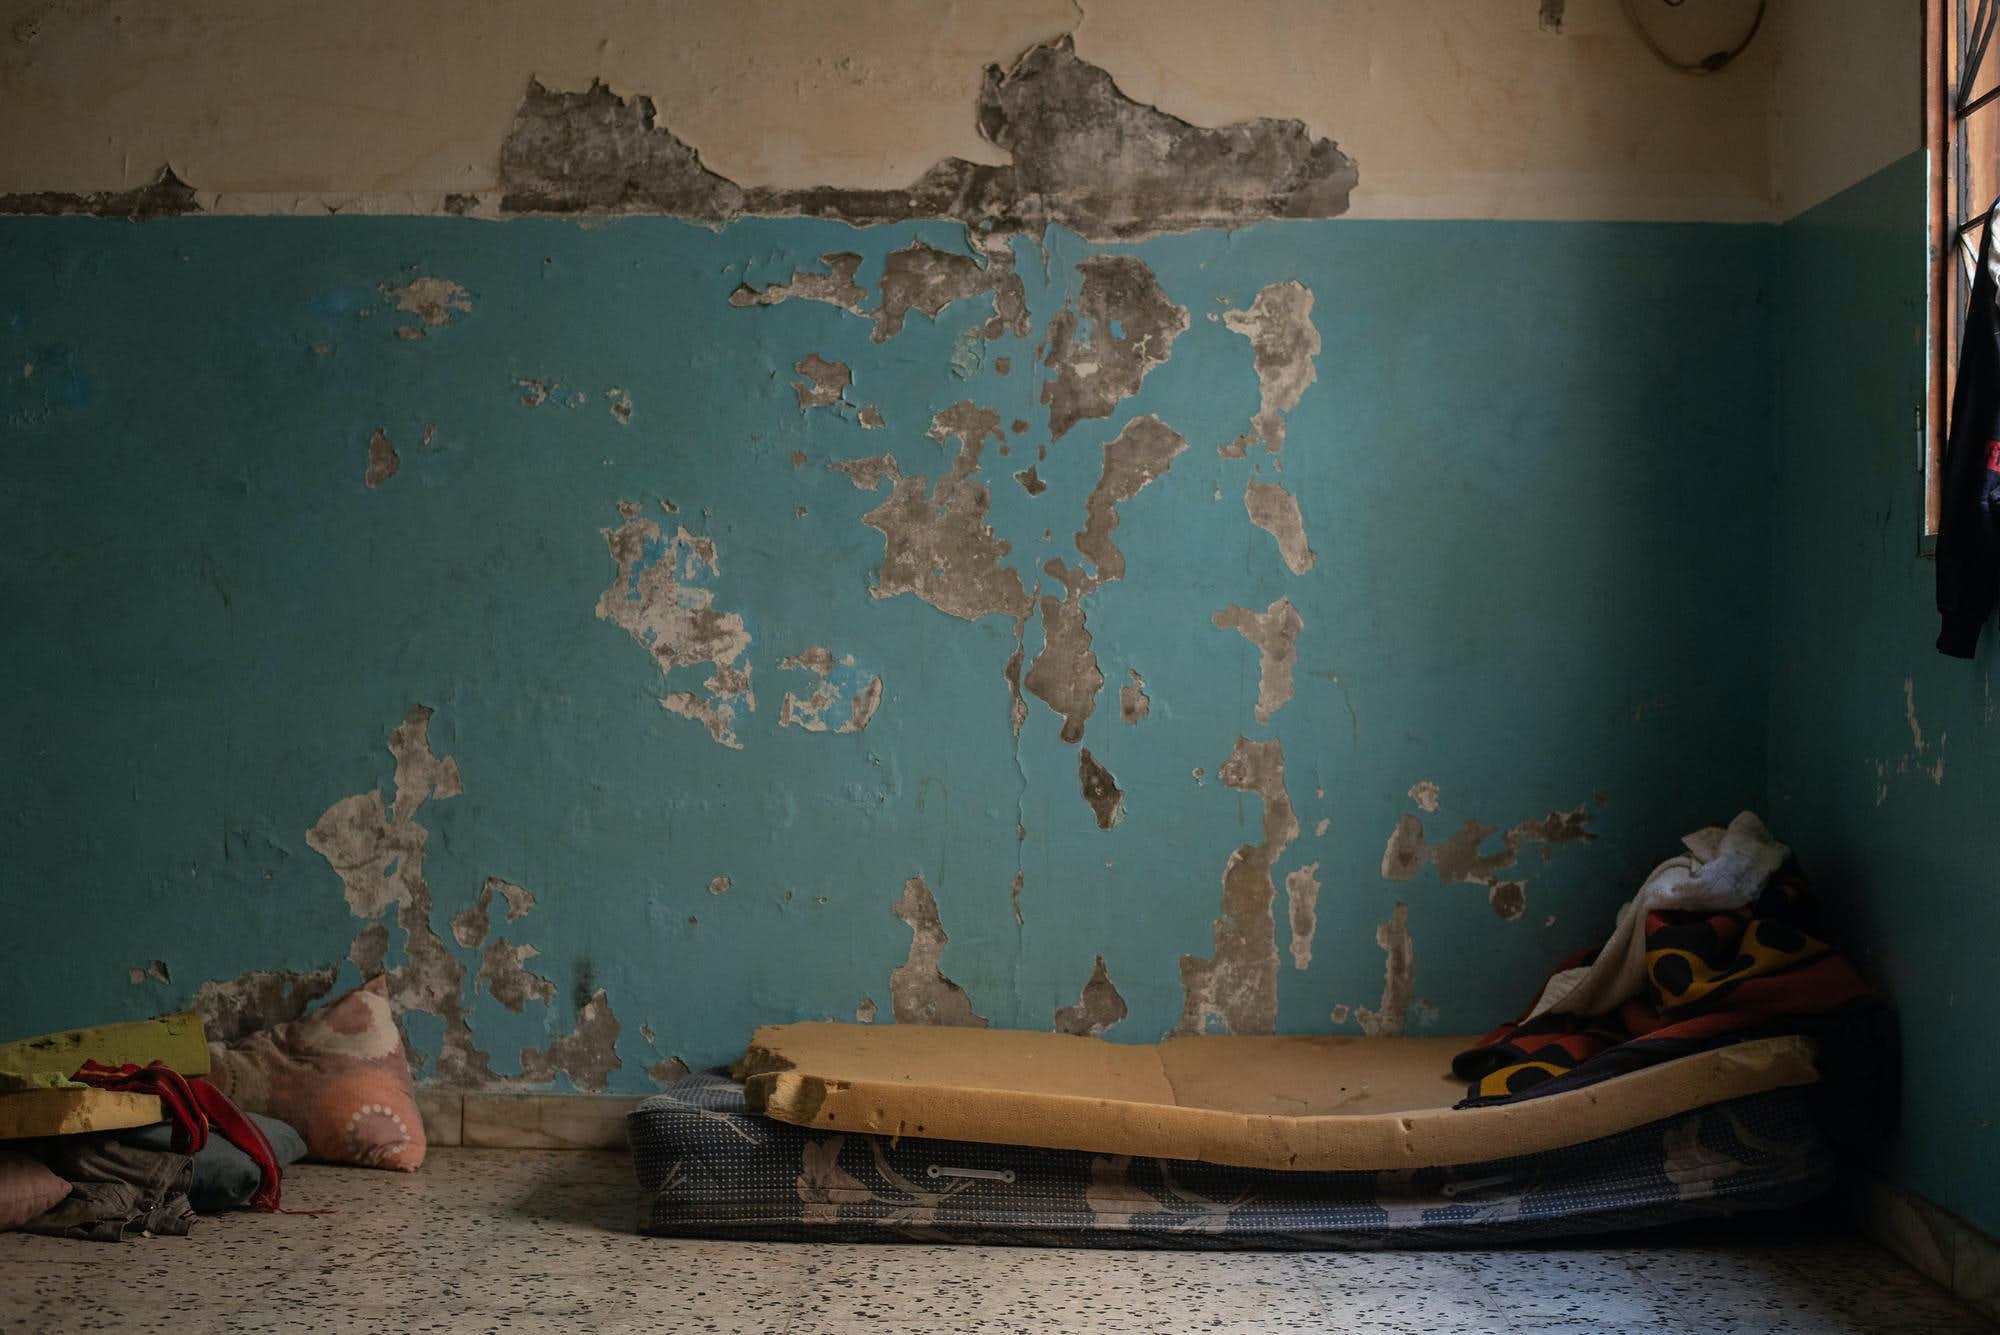 A Refugee's Bed in a Shared Room Where He Sleeps with 9 Other People in January 2020, (G. Piscitelli,